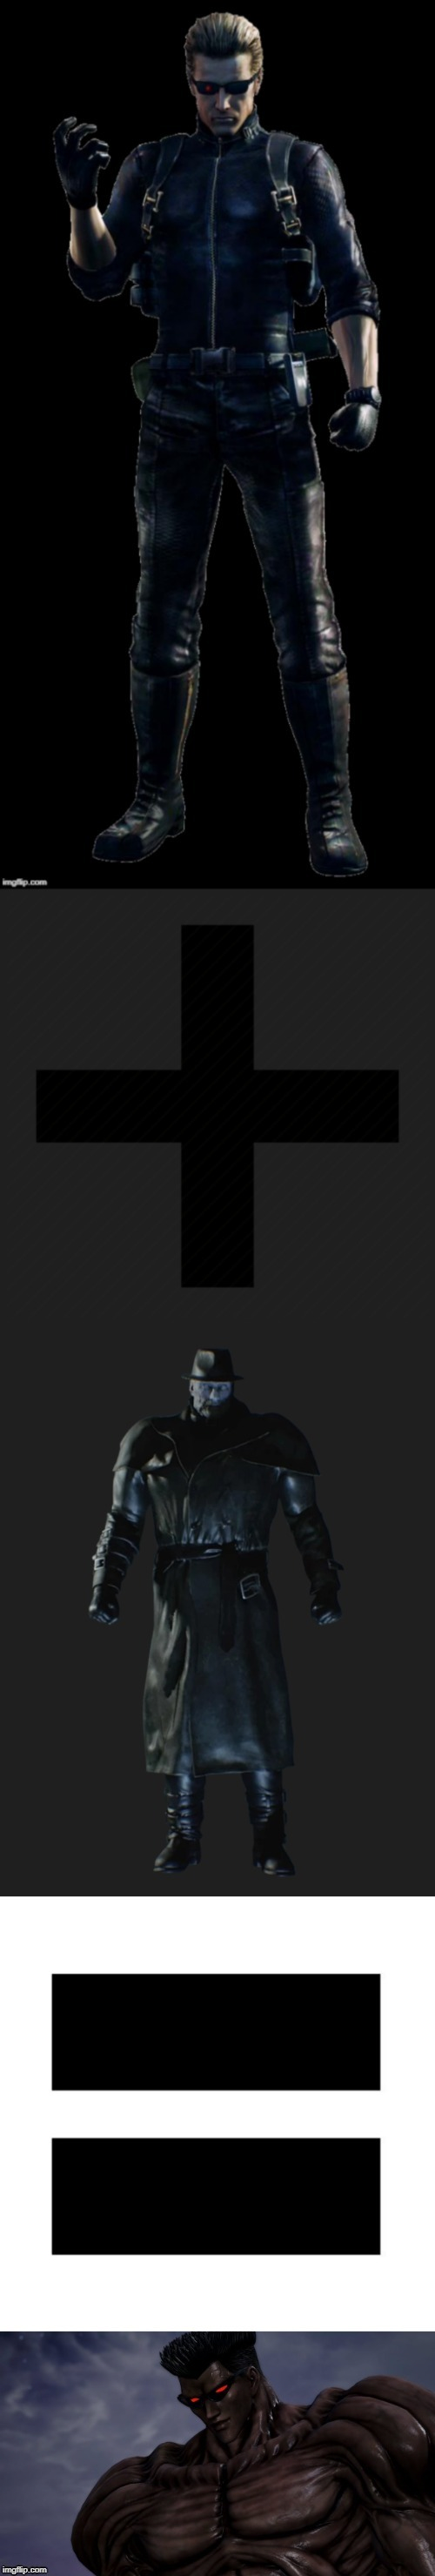 Albert Wesker plus Mr. X equals Toguro | image tagged in resident evil,anime,animeme,anime meme | made w/ Imgflip meme maker